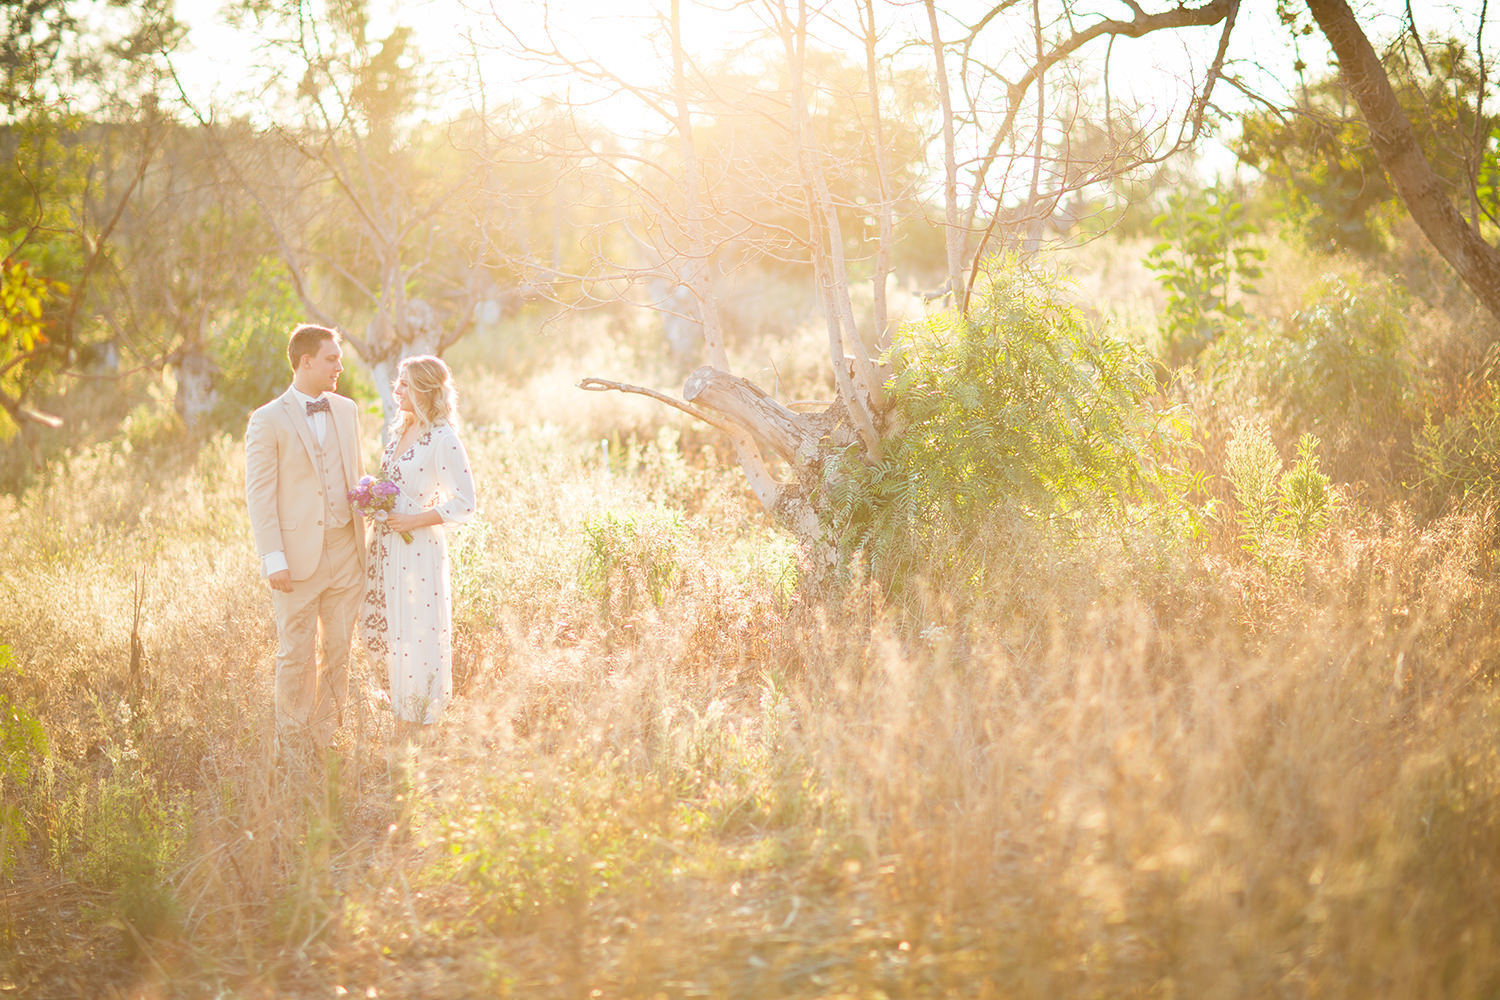 amazing light with bride and groom in open field